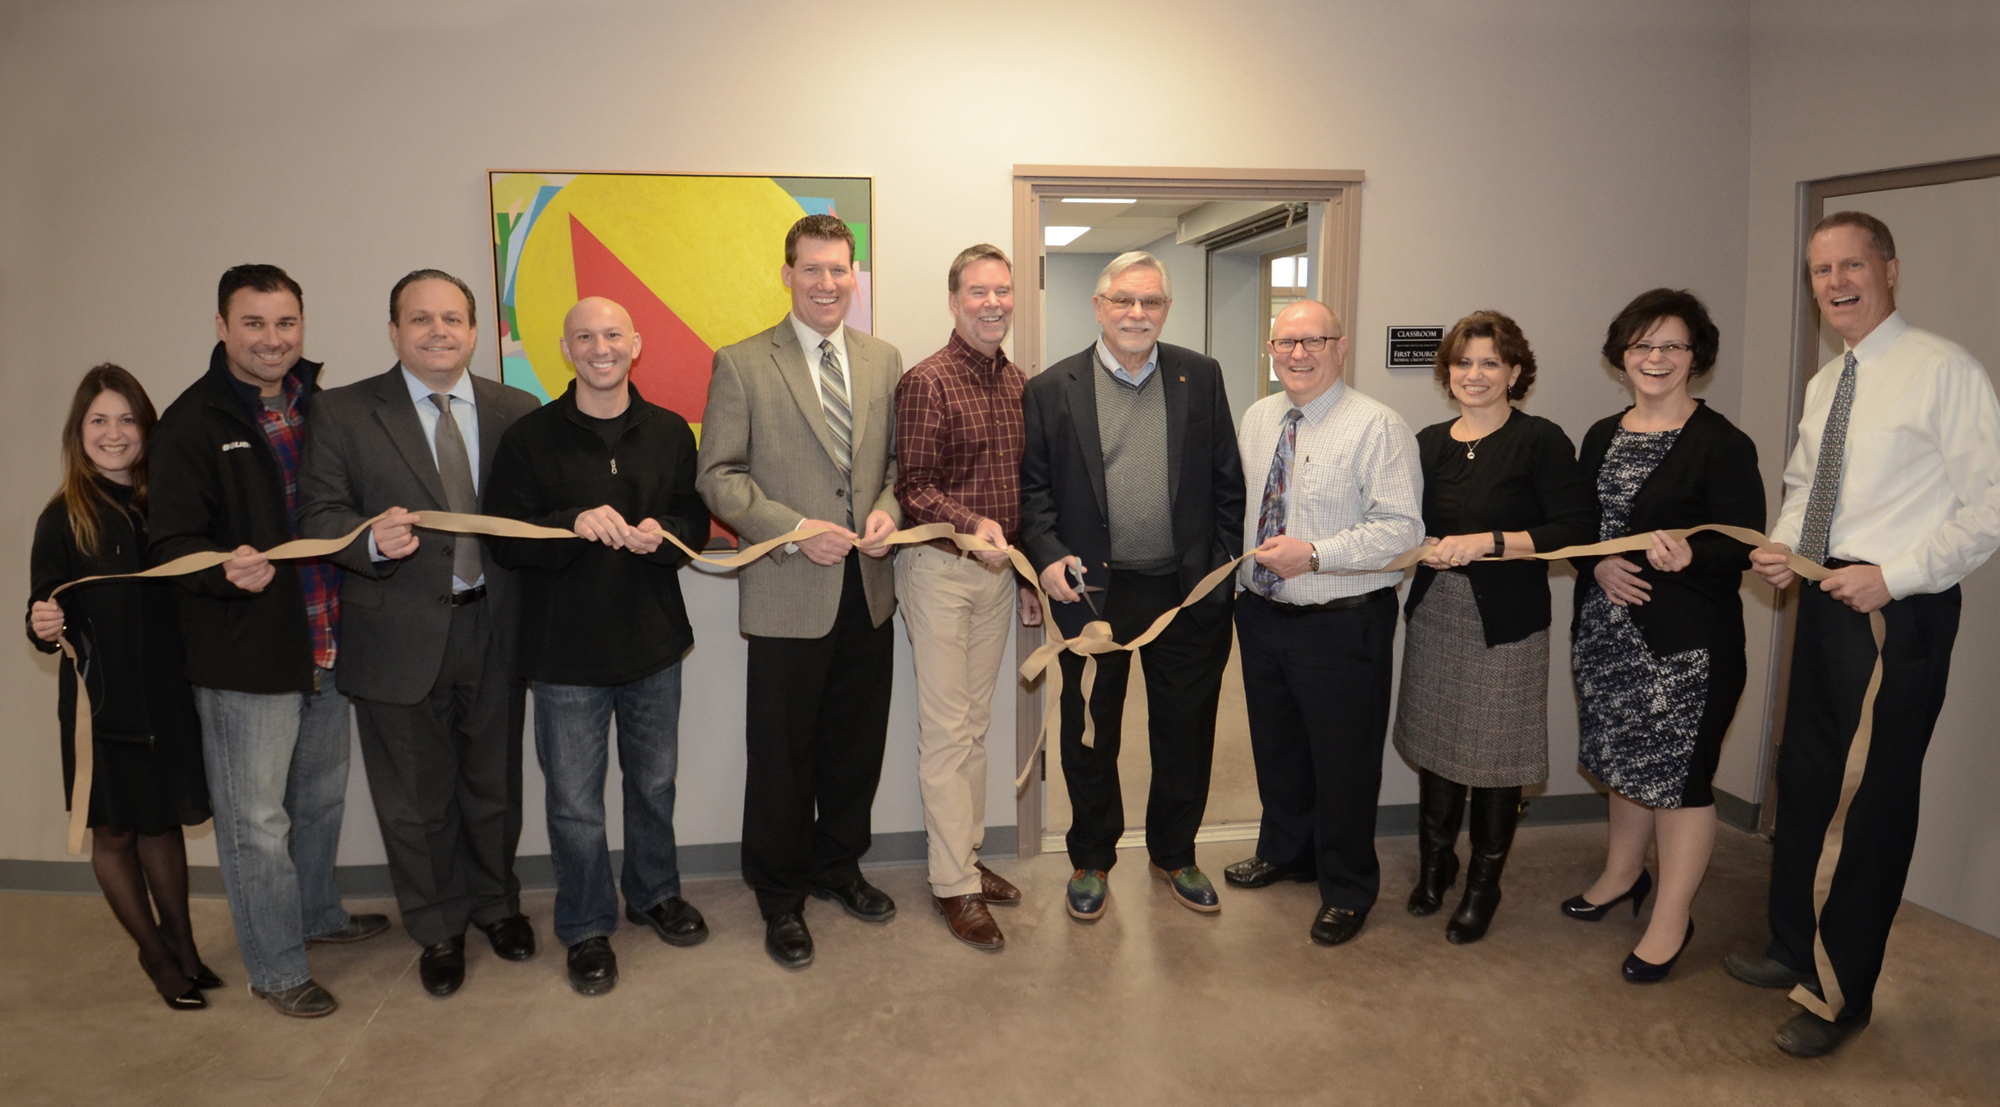 First Source staff dedicated the new multi-purpose room at The Root Farm